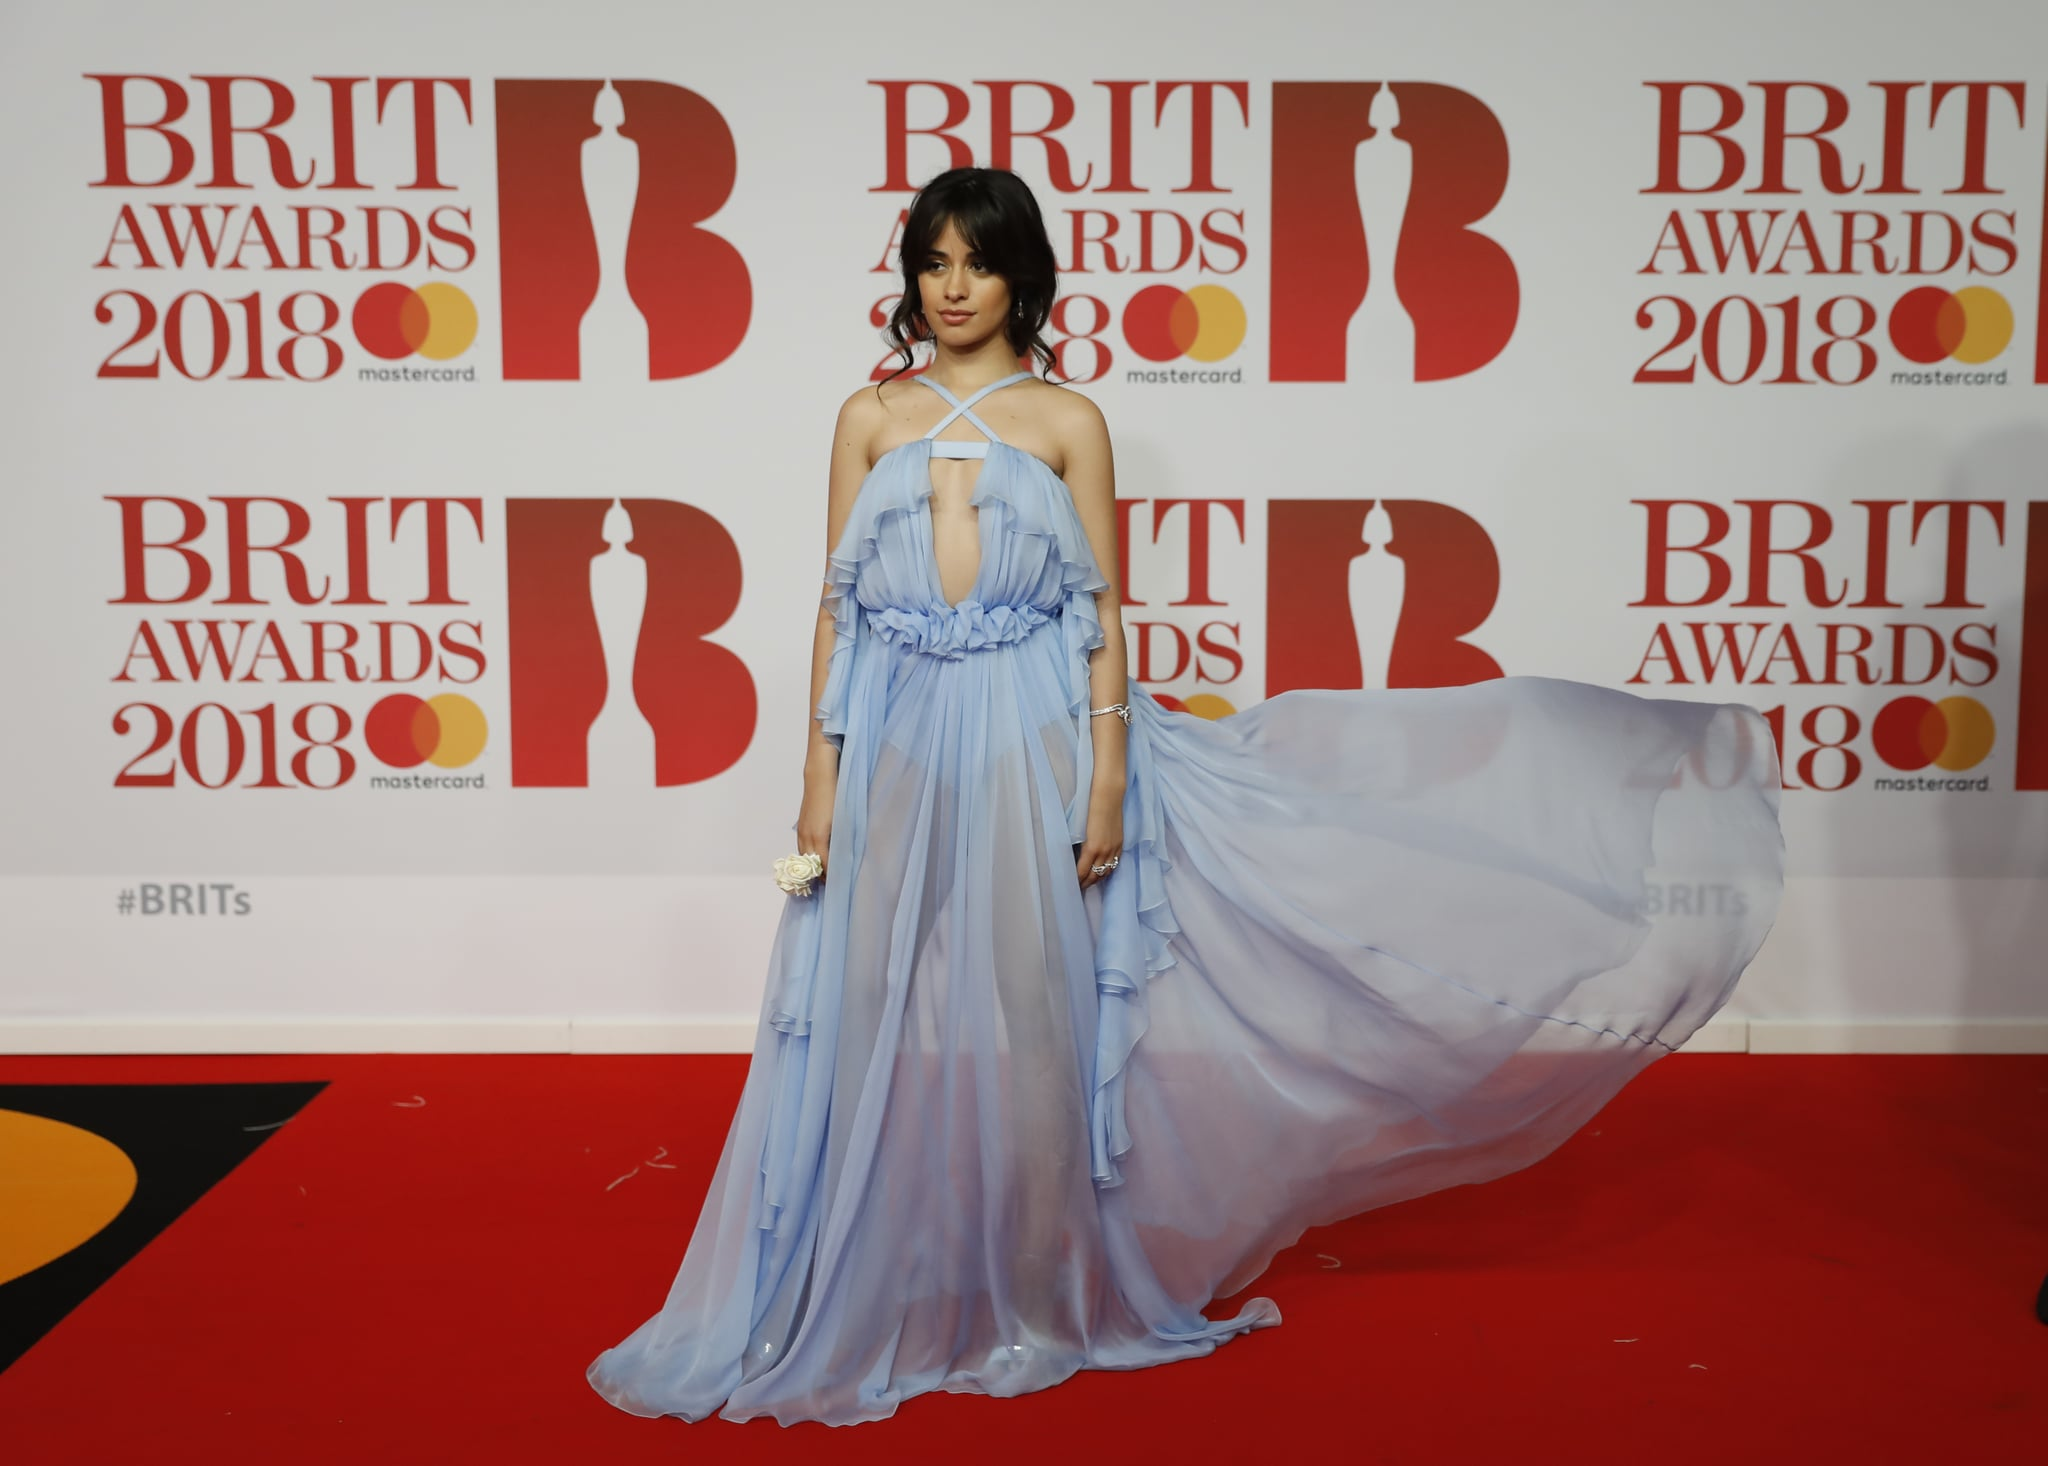 Dua Lipa and Stormzy scoop top gongs at Brit Awards